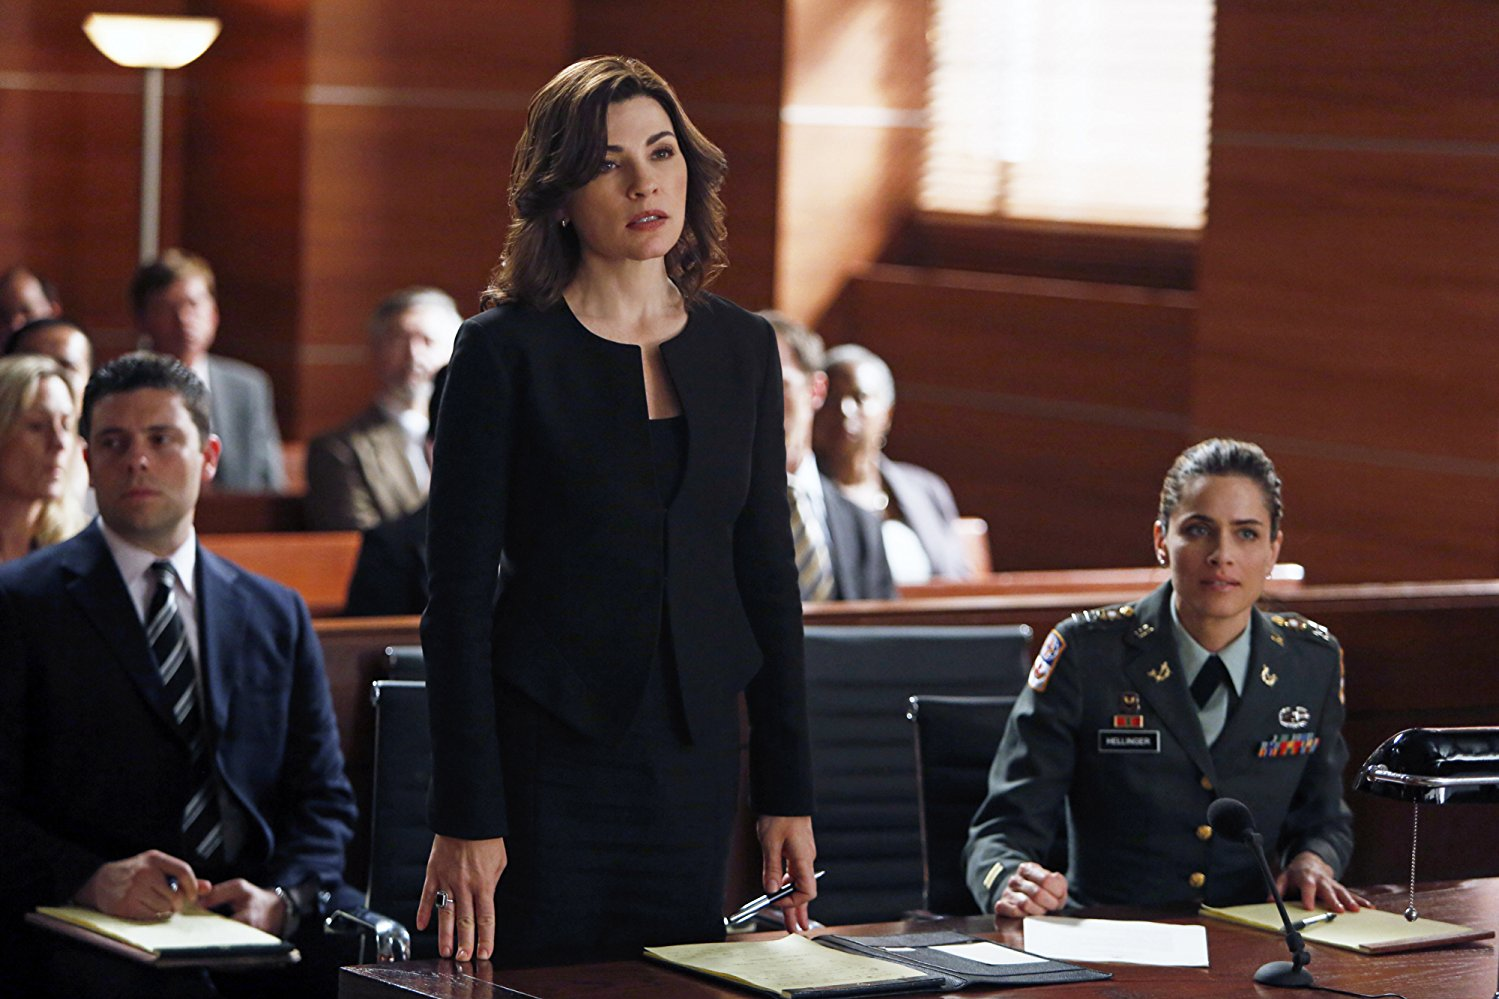 The Art of War | The Good Wife Wiki | FANDOM powered by Wikia